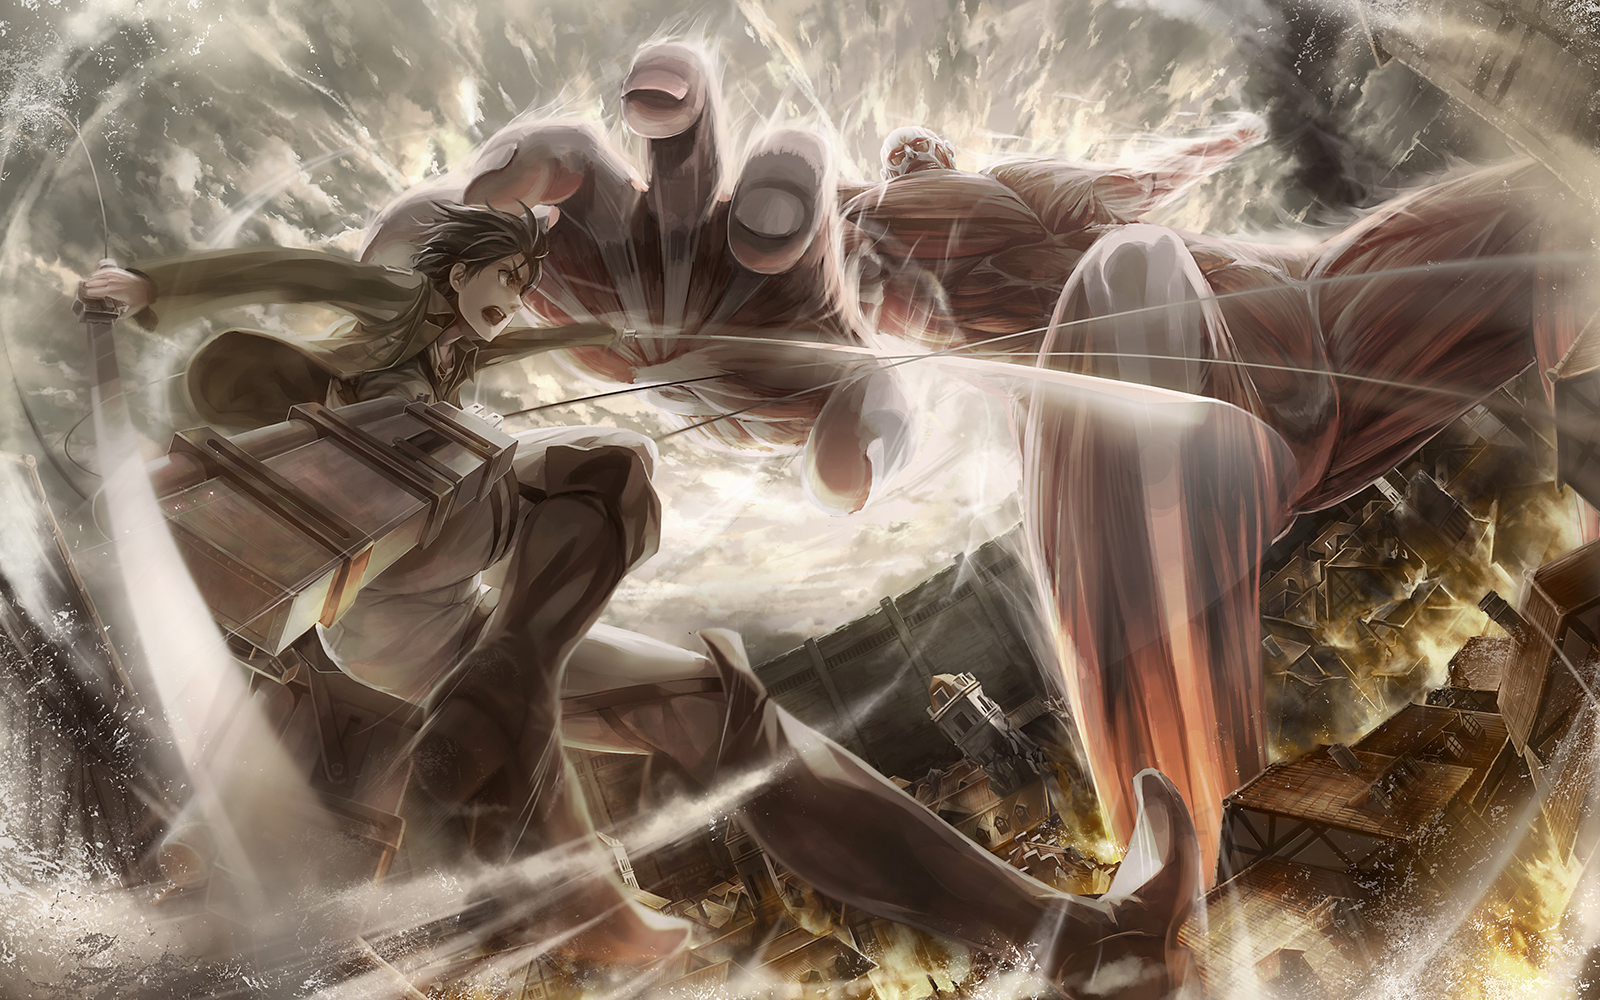 Download Wallpaper From Anime Attack On Titan With Tags Linux Eren Yeager Shingeki No Kyojin Colossal Titan